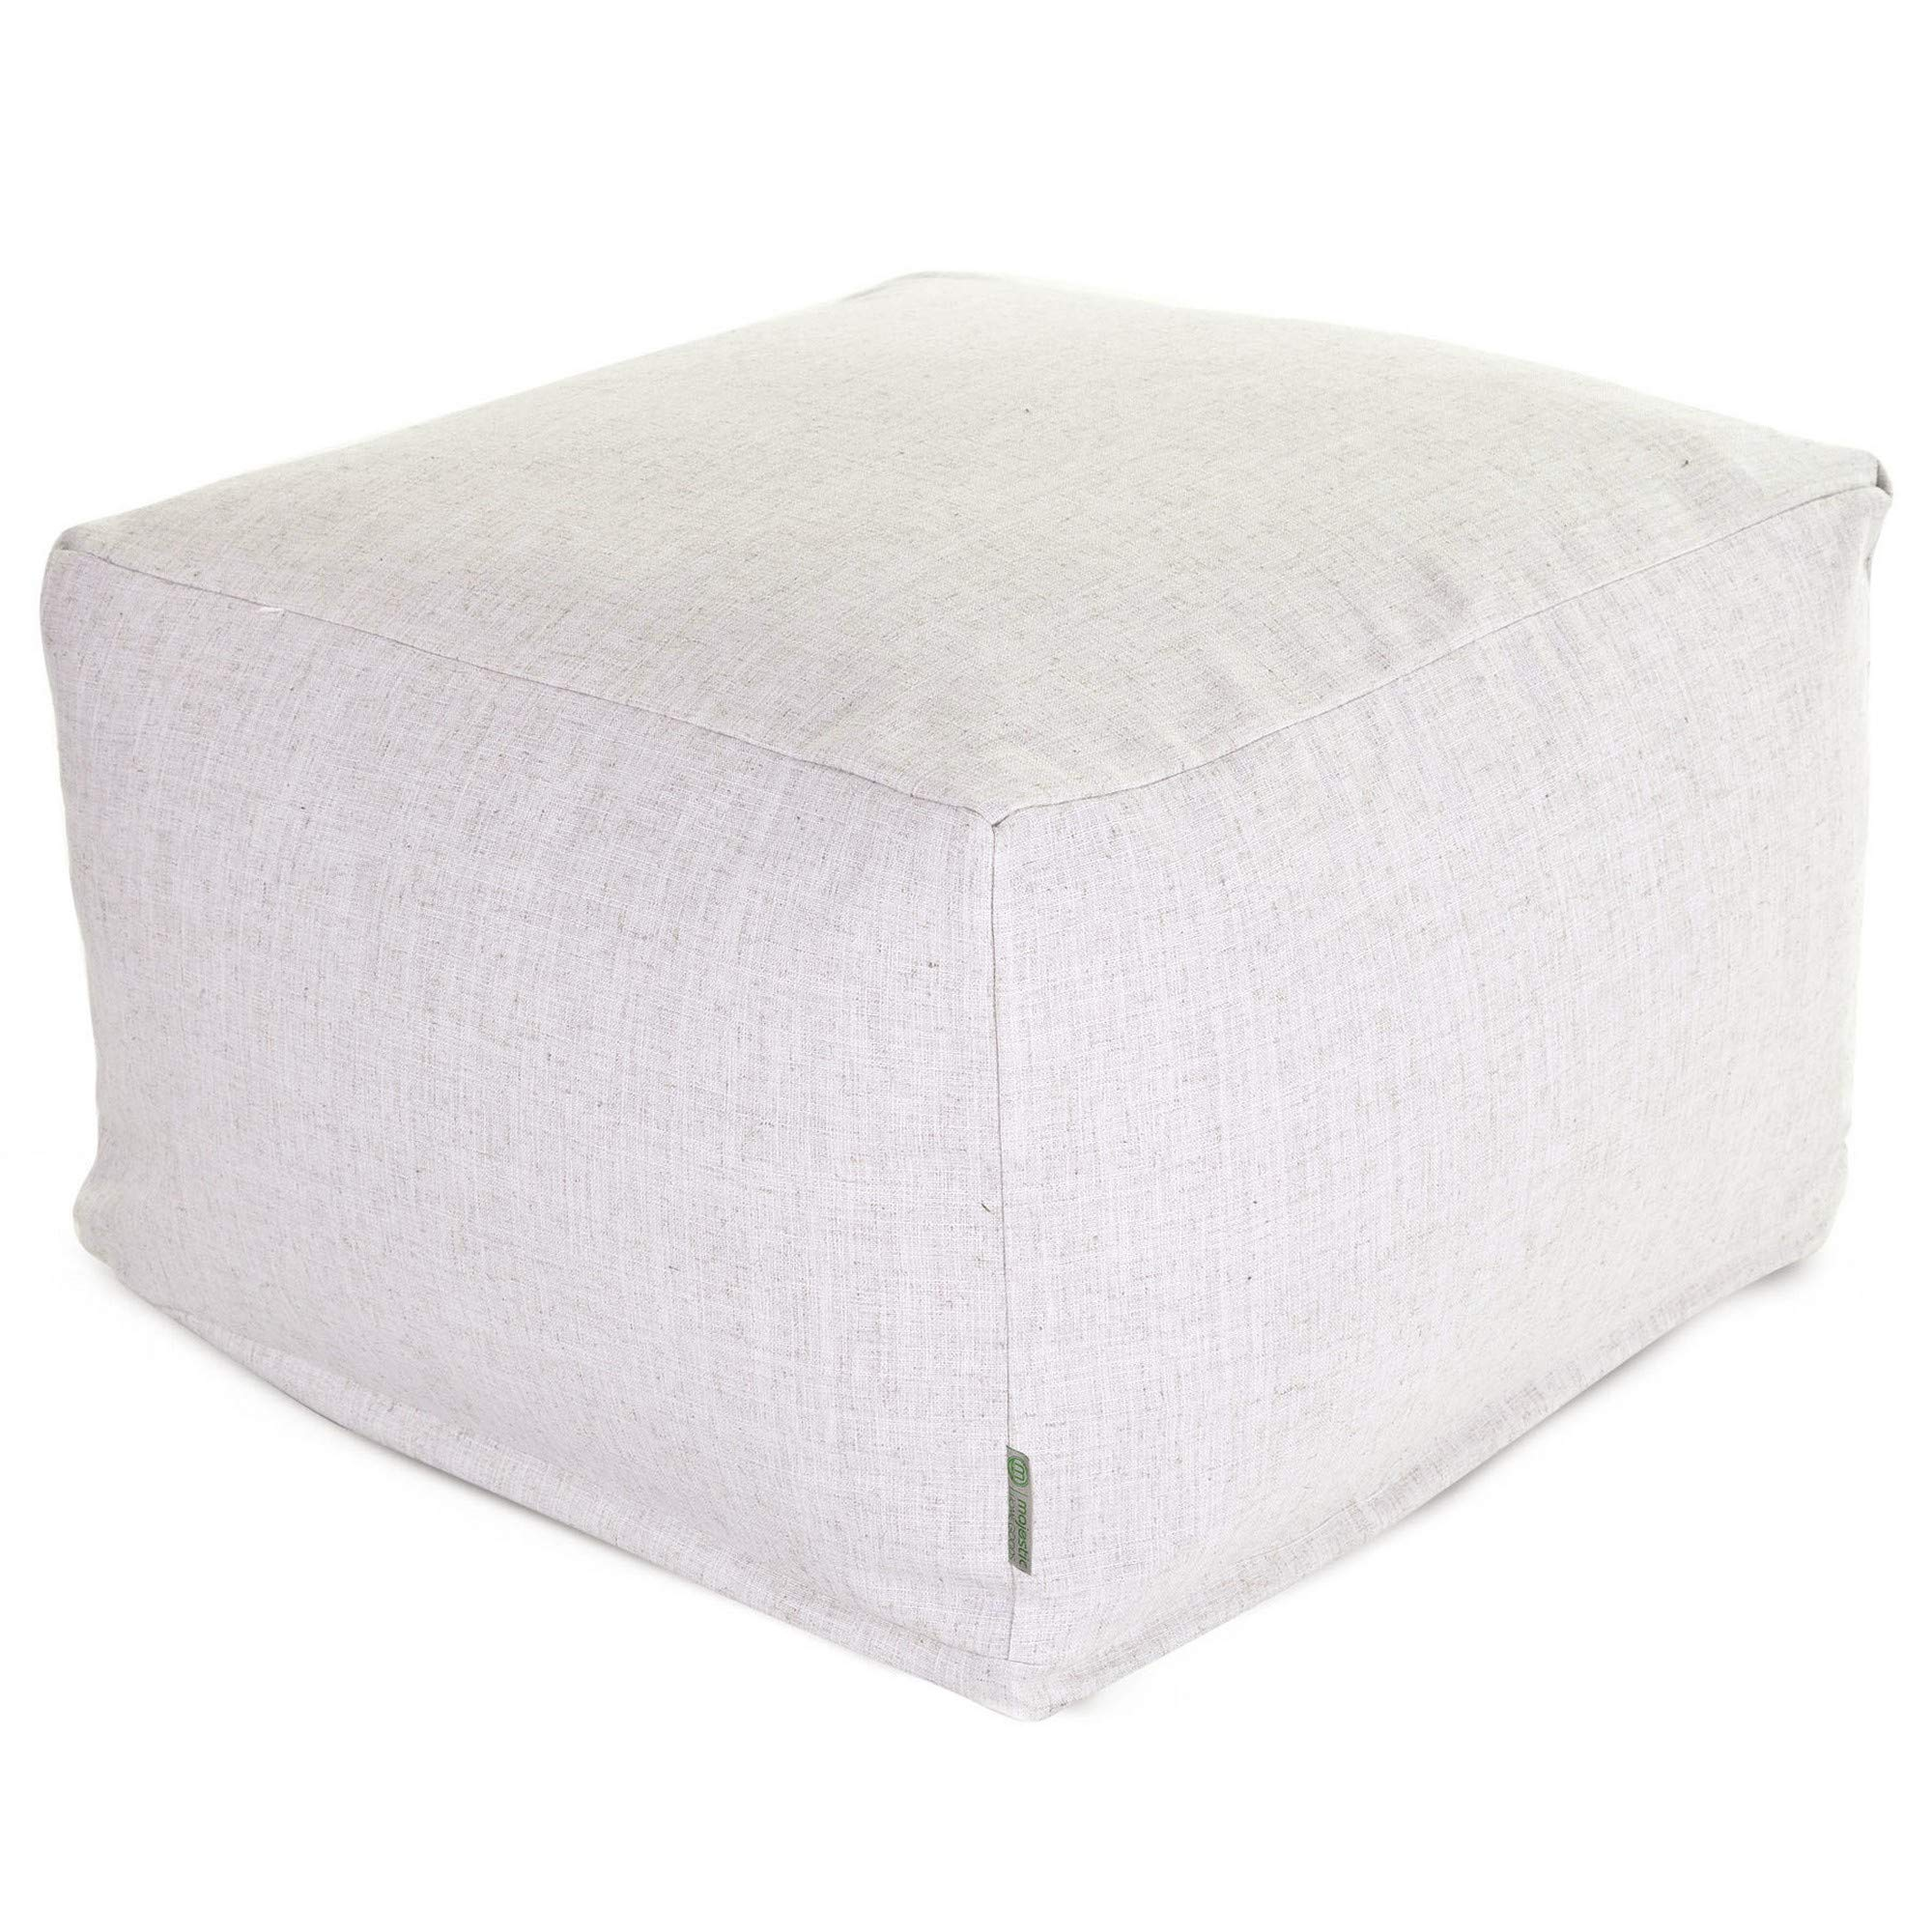 Majestic Home Goods Wales Ottoman, Large,Magnolia by Majestic Home Goods